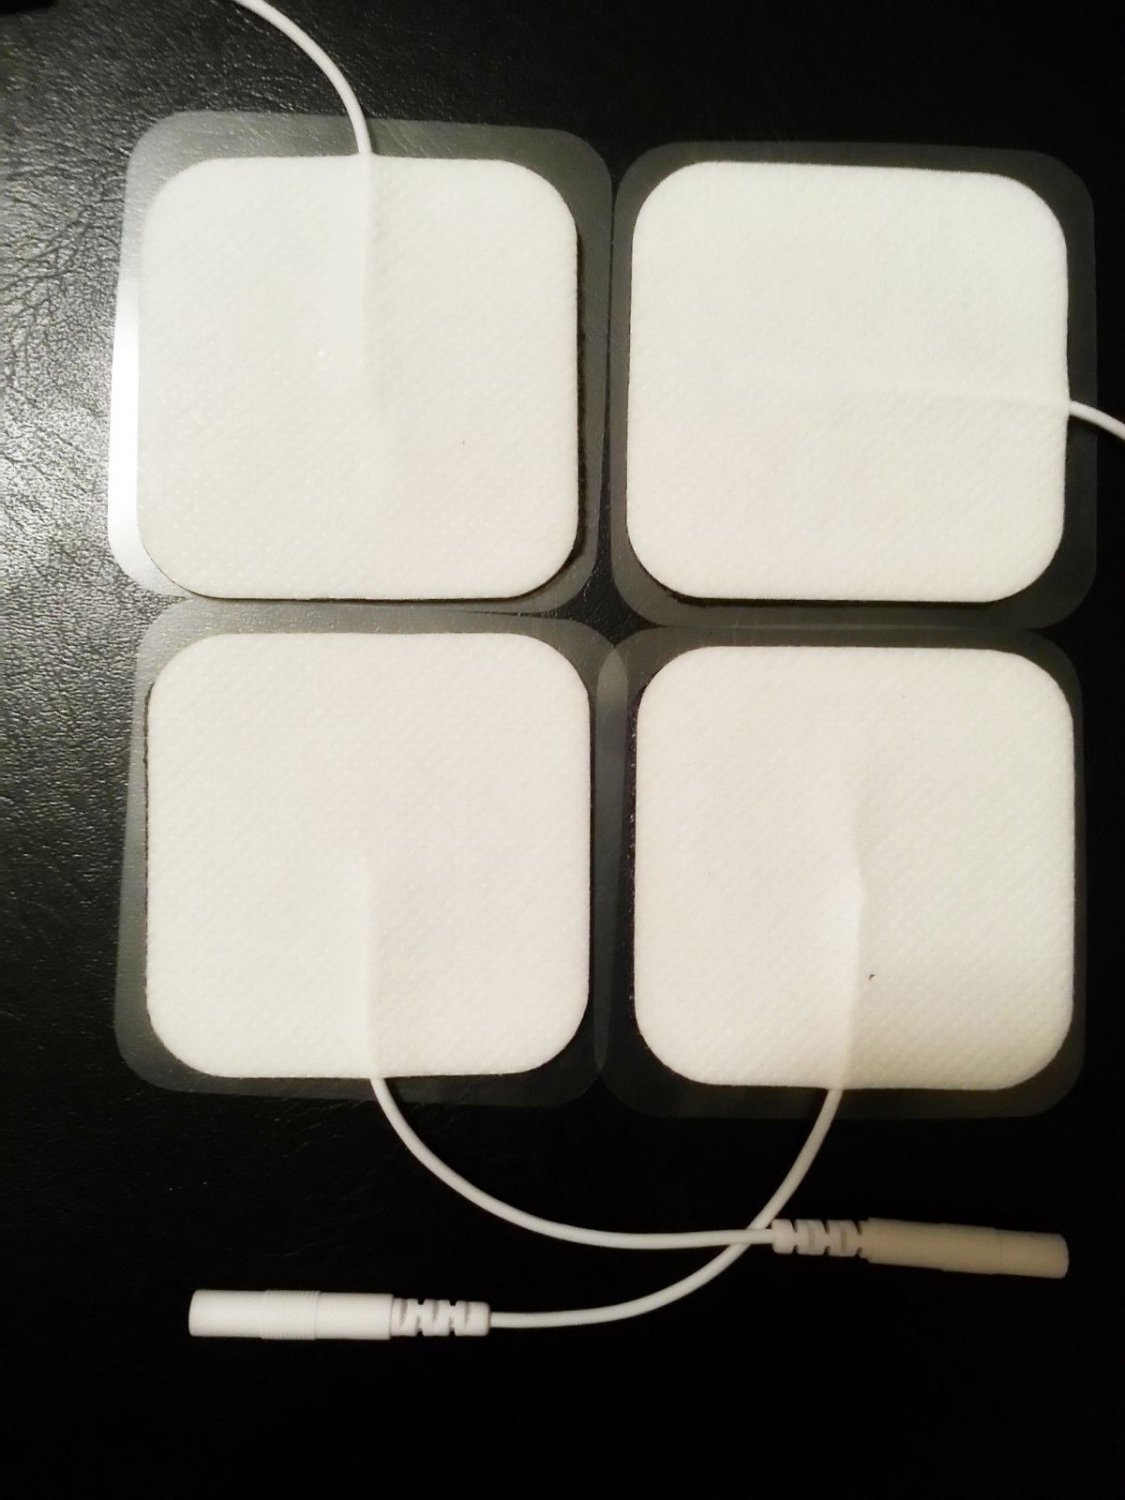 8 PC SQUARE REPLACEMENT ELECTRODE MASSAGE PADS FOR ULTIMA 5 DIGITAL TENS UNIT